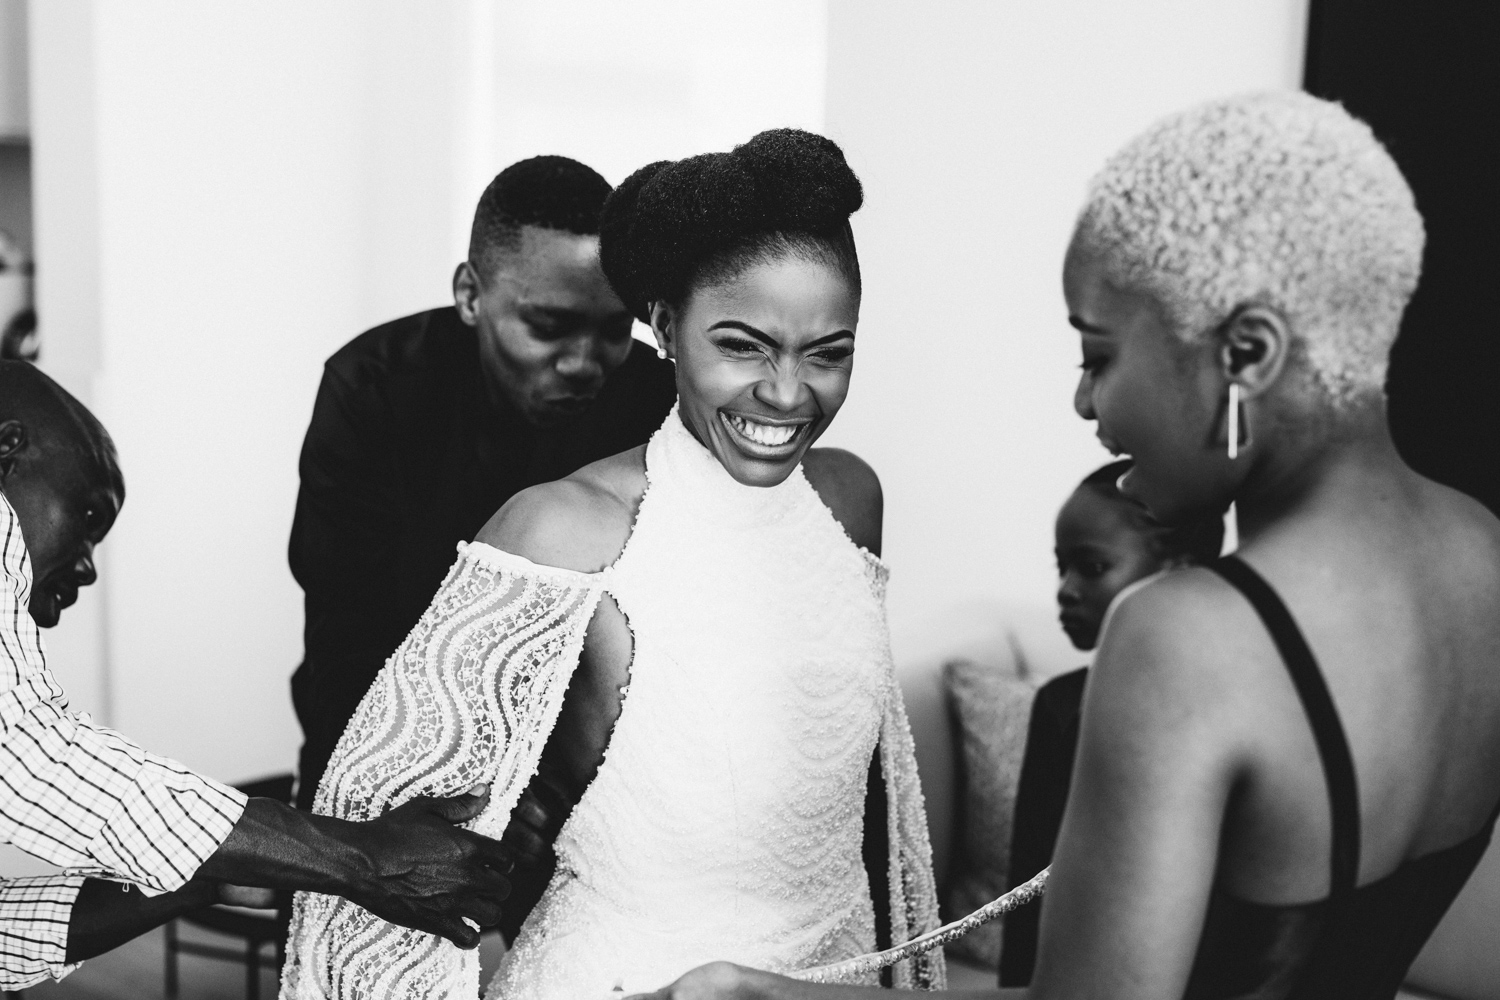 a black and white image taken by Vivideblue of the smiling bride and people helping her with the final details to her wedding dress at Val de Vie